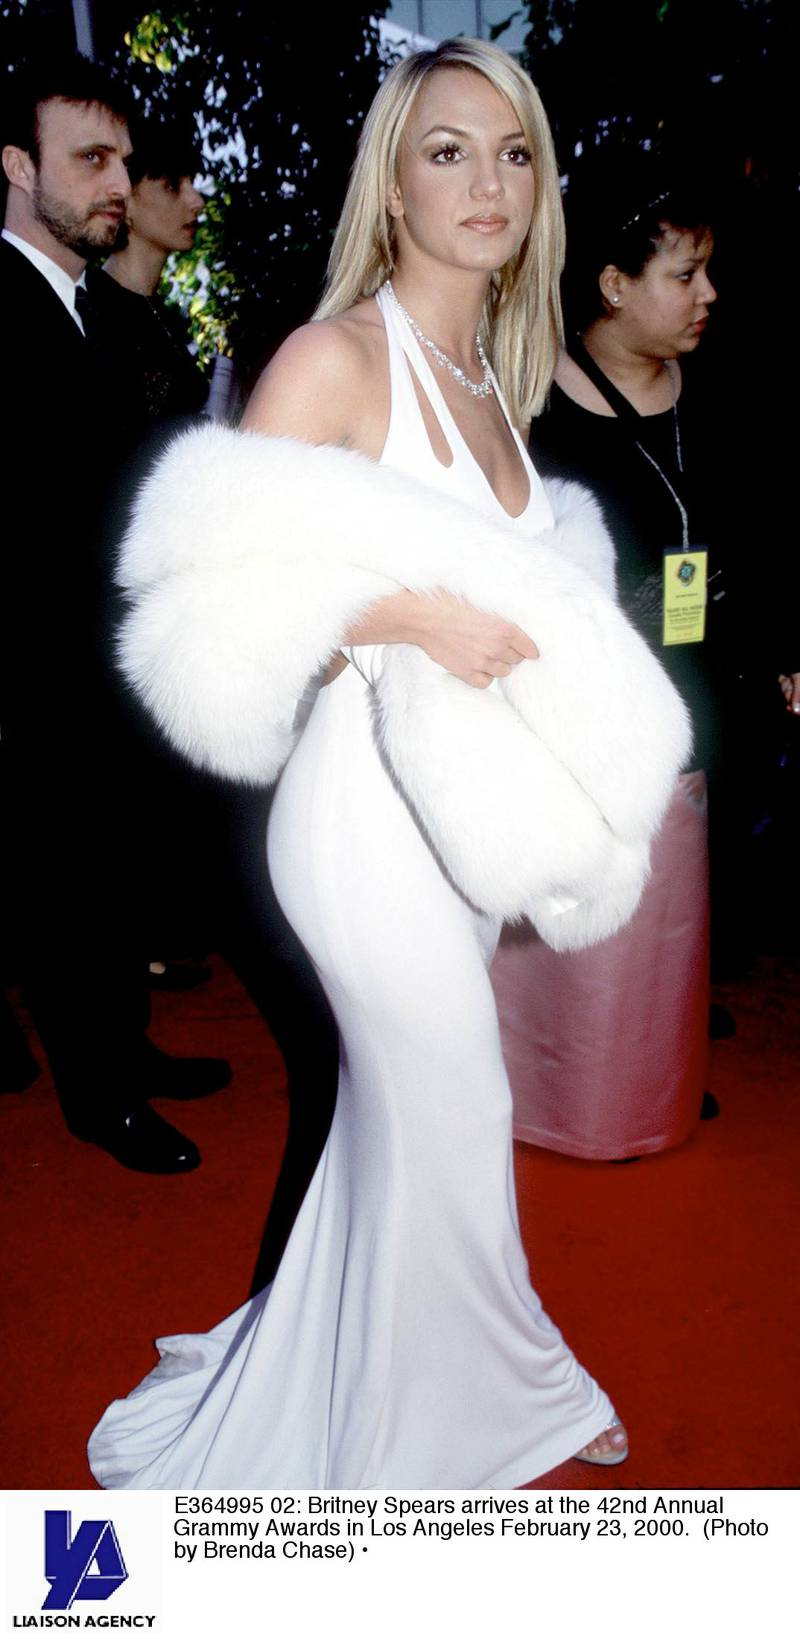 E364995 02: Britney Spears arrives at the 42nd Annual Grammy Awards in Los Angeles February 23, 2000. (Photo by Brenda Chase)